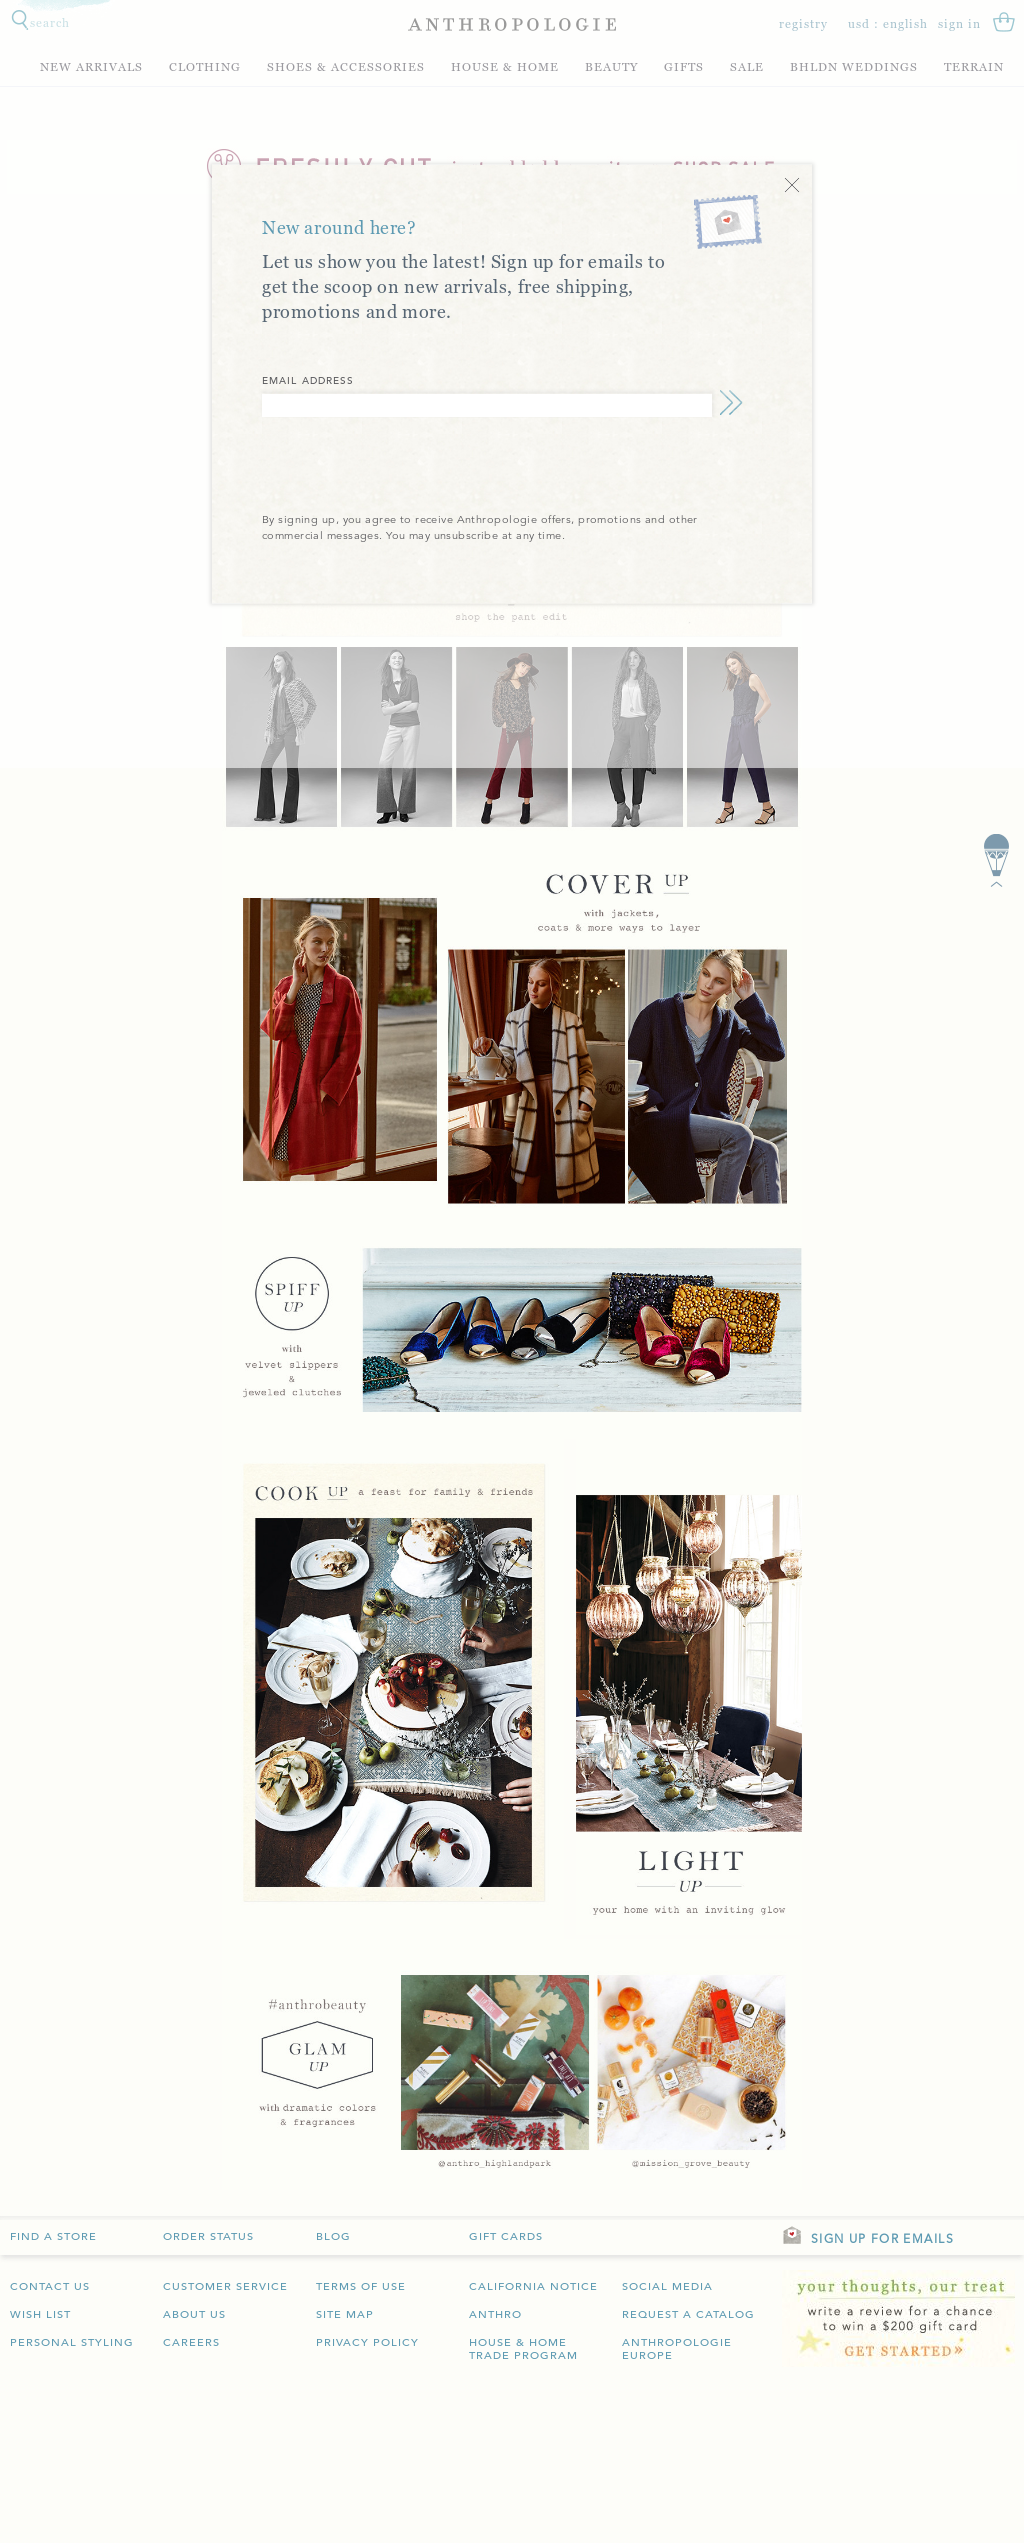 36a8c35c876a Anthropologie Competitors, Revenue and Employees - Owler Company Profile